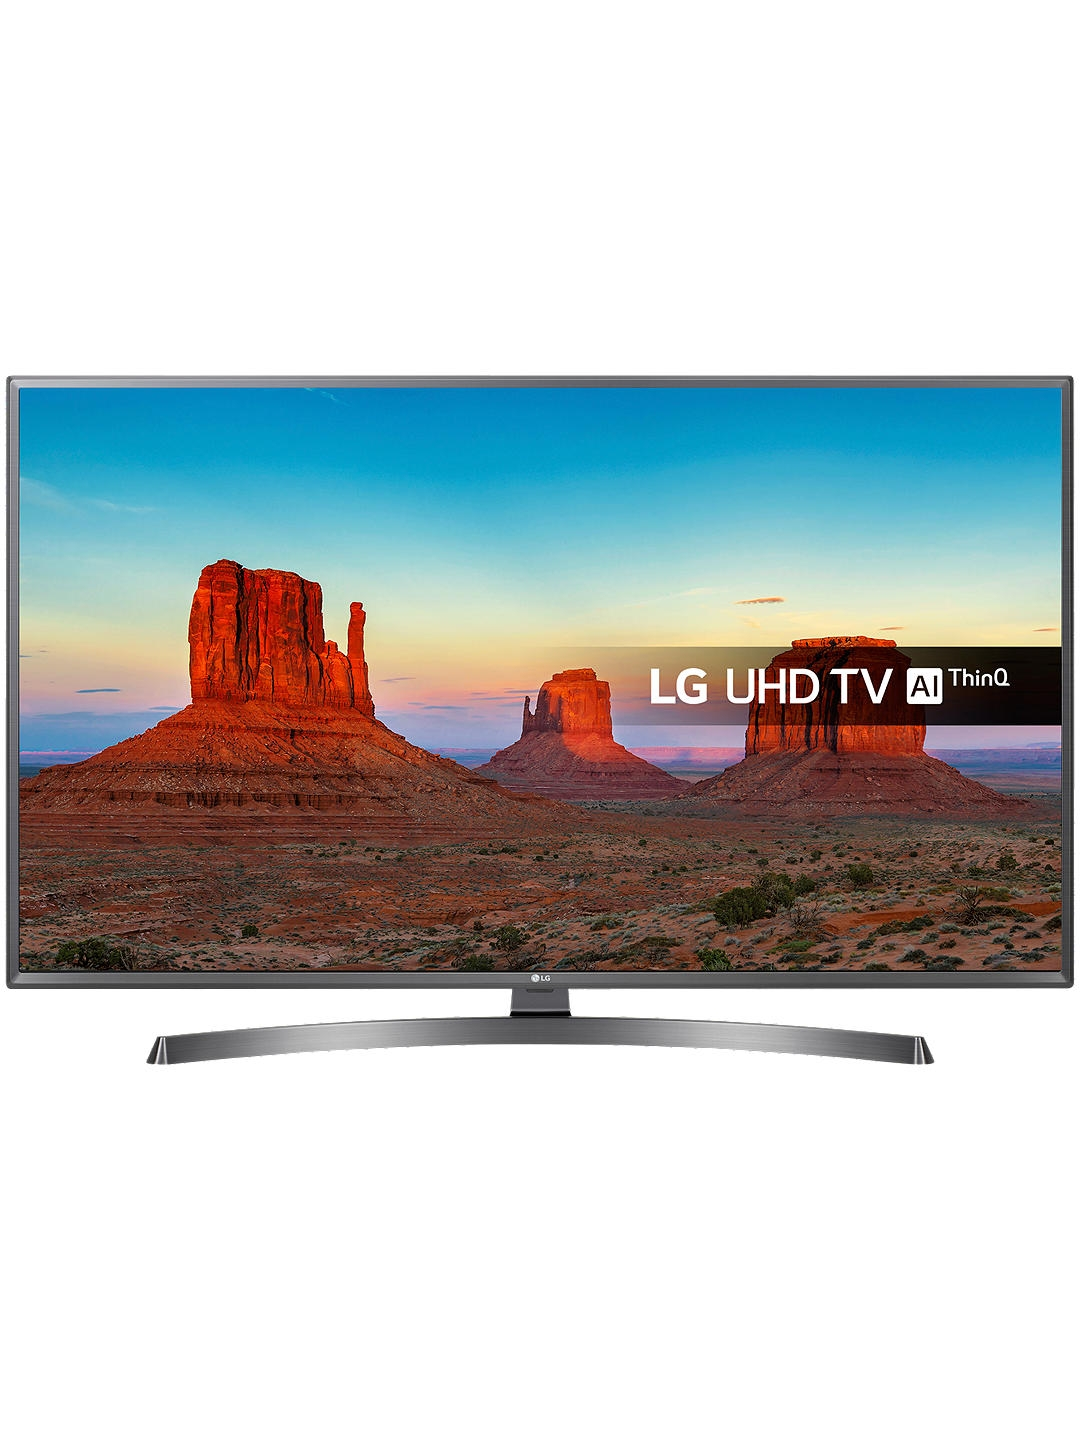 Lg 55uk7550pla 55 Quot Led Hdr 4k Ultra Hd Smart Tv With Freeview